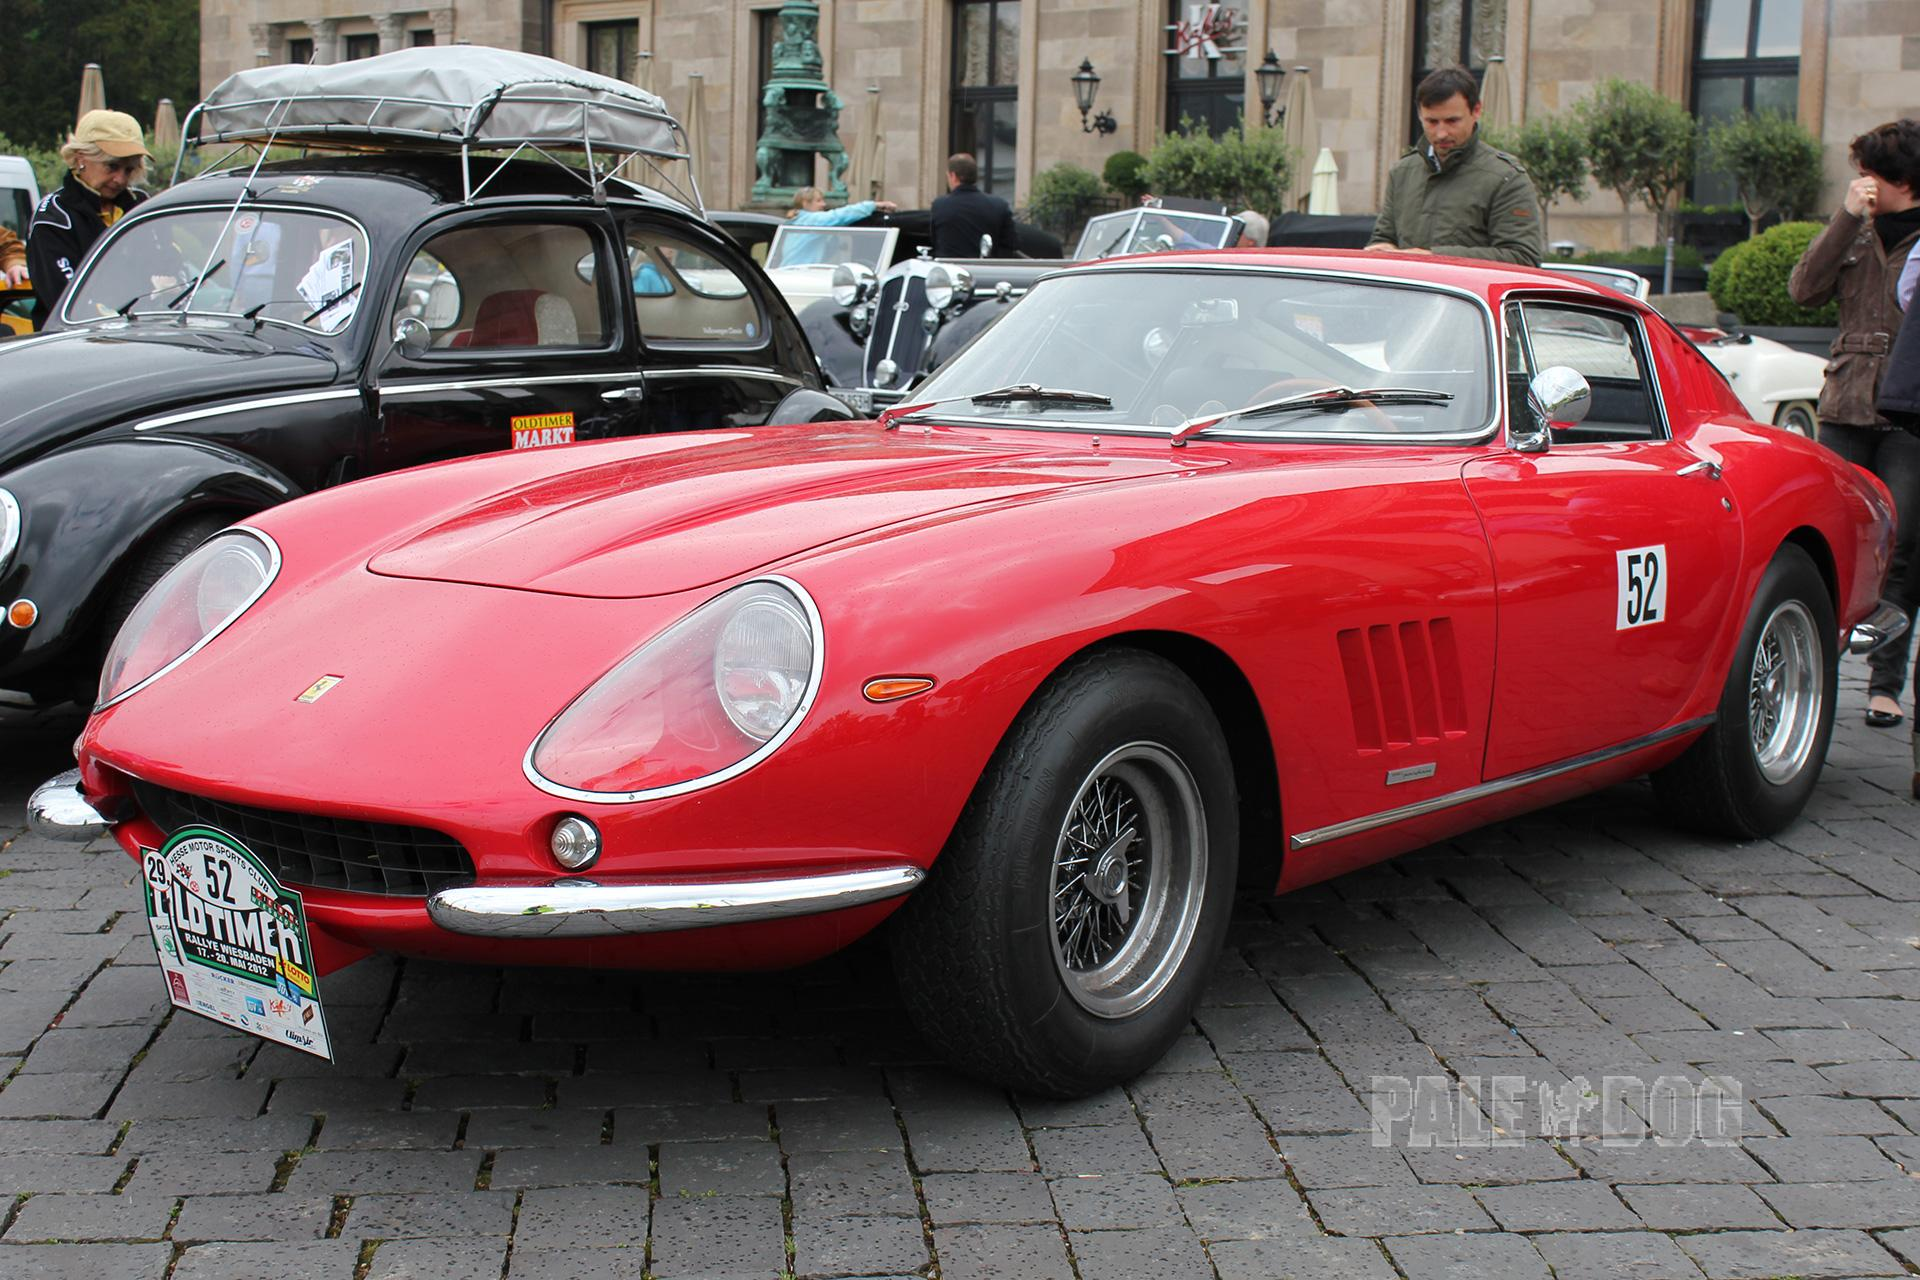 1966 Ferrari 275 Gtb 4 Front View 1960s Paledog Photo Collection